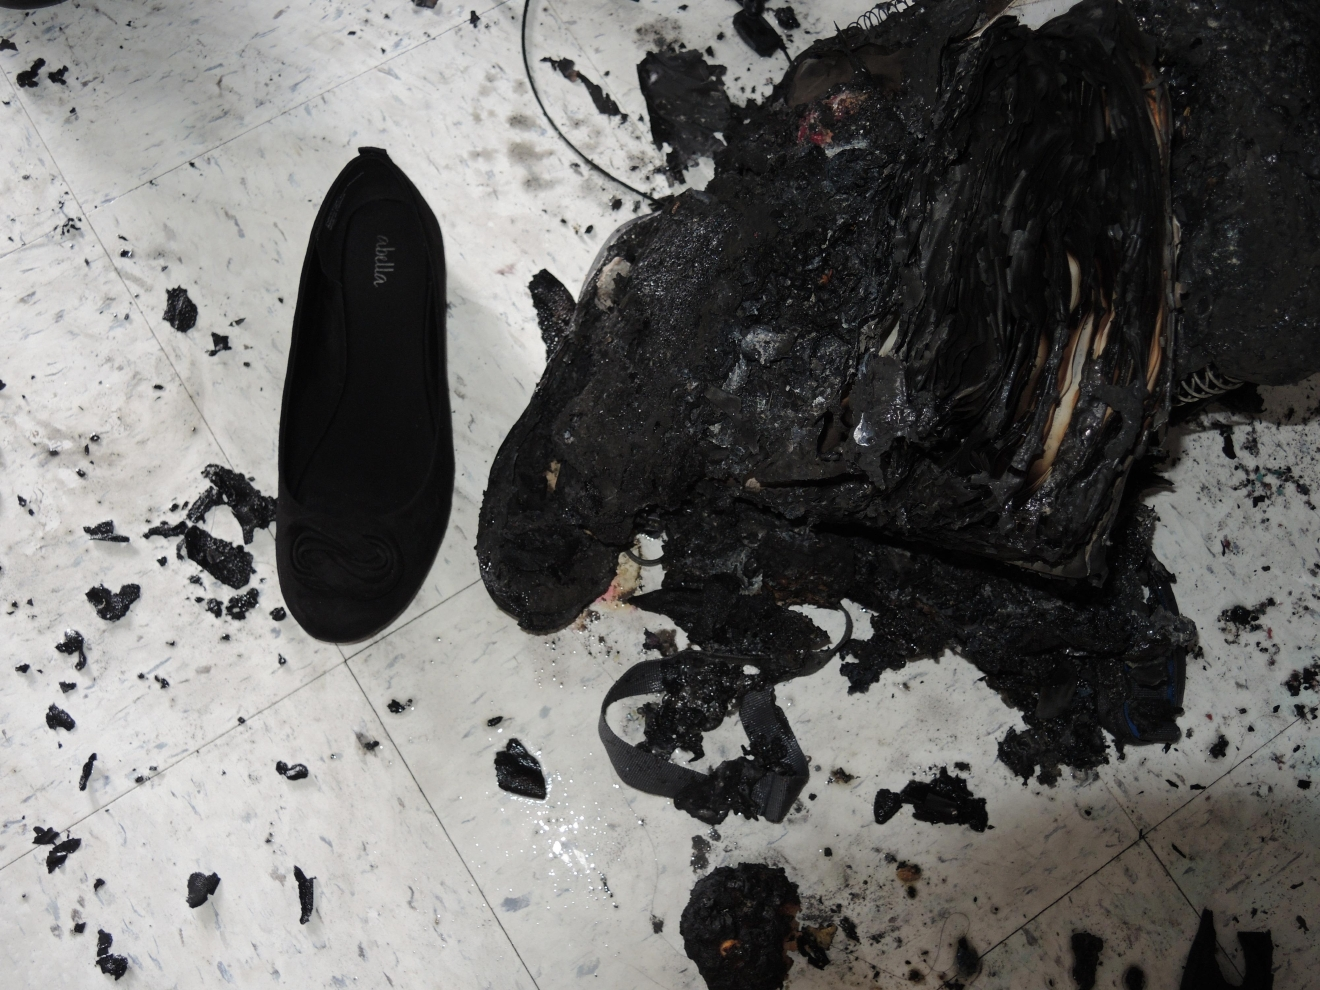 A student's shoes after experiment went wrong. (Photo: Virginia Occupational Safety and Health)